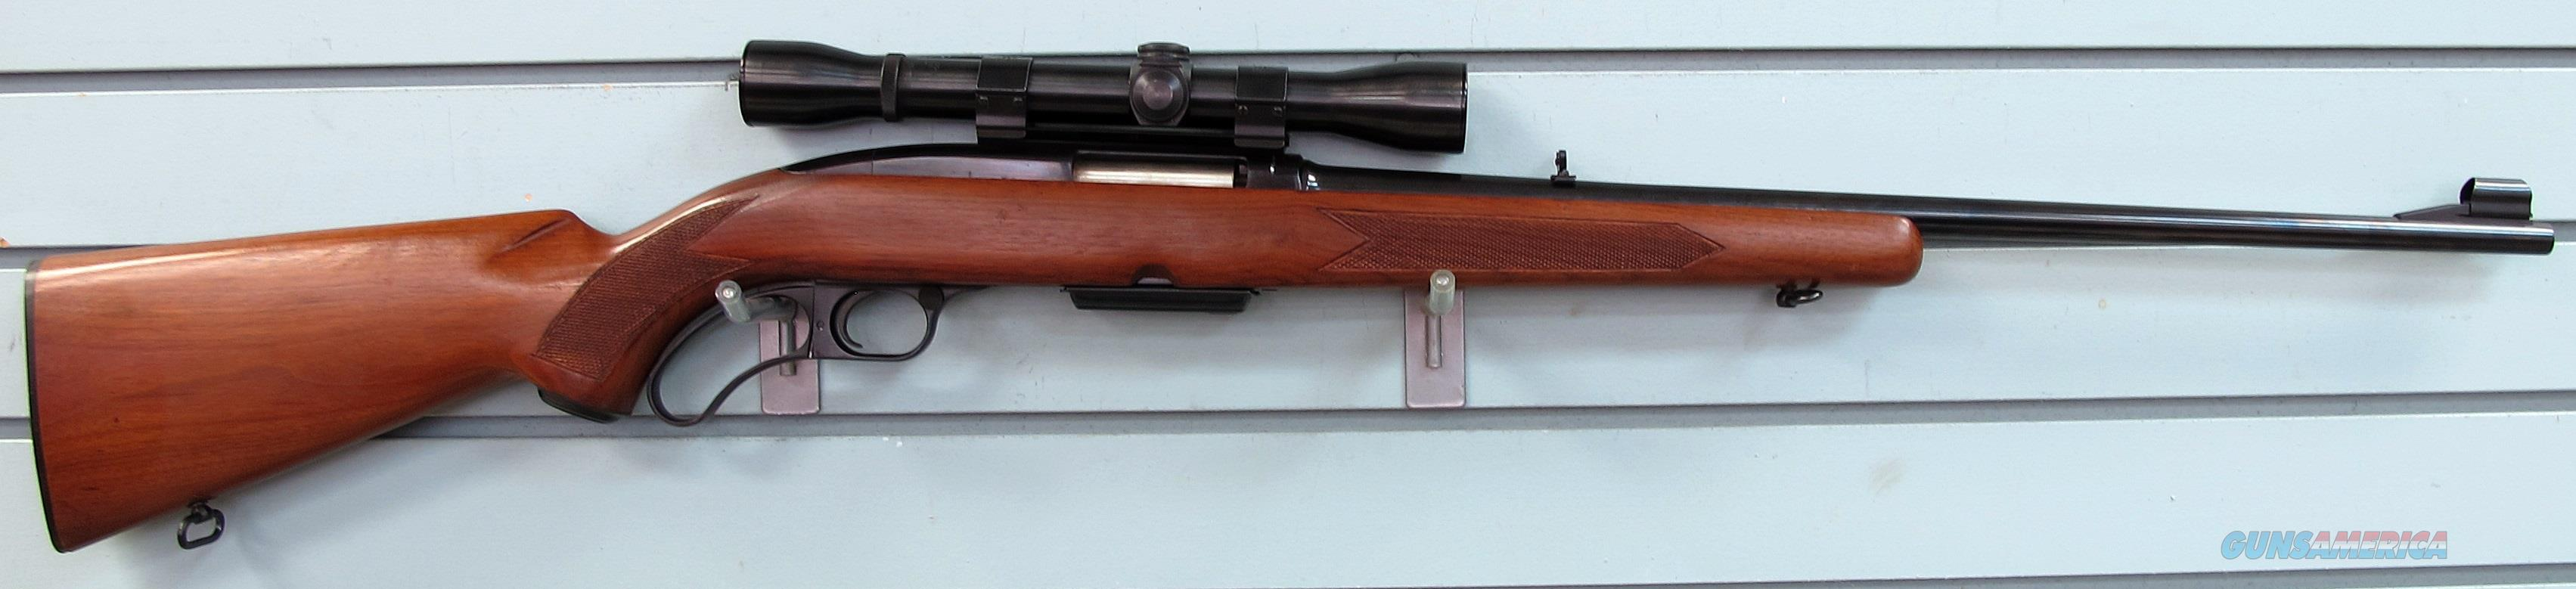 WINCHESTER MODEL 88 PRE-64  Guns > Rifles > Winchester Rifles - Modern Lever > Other Lever > Pre-64